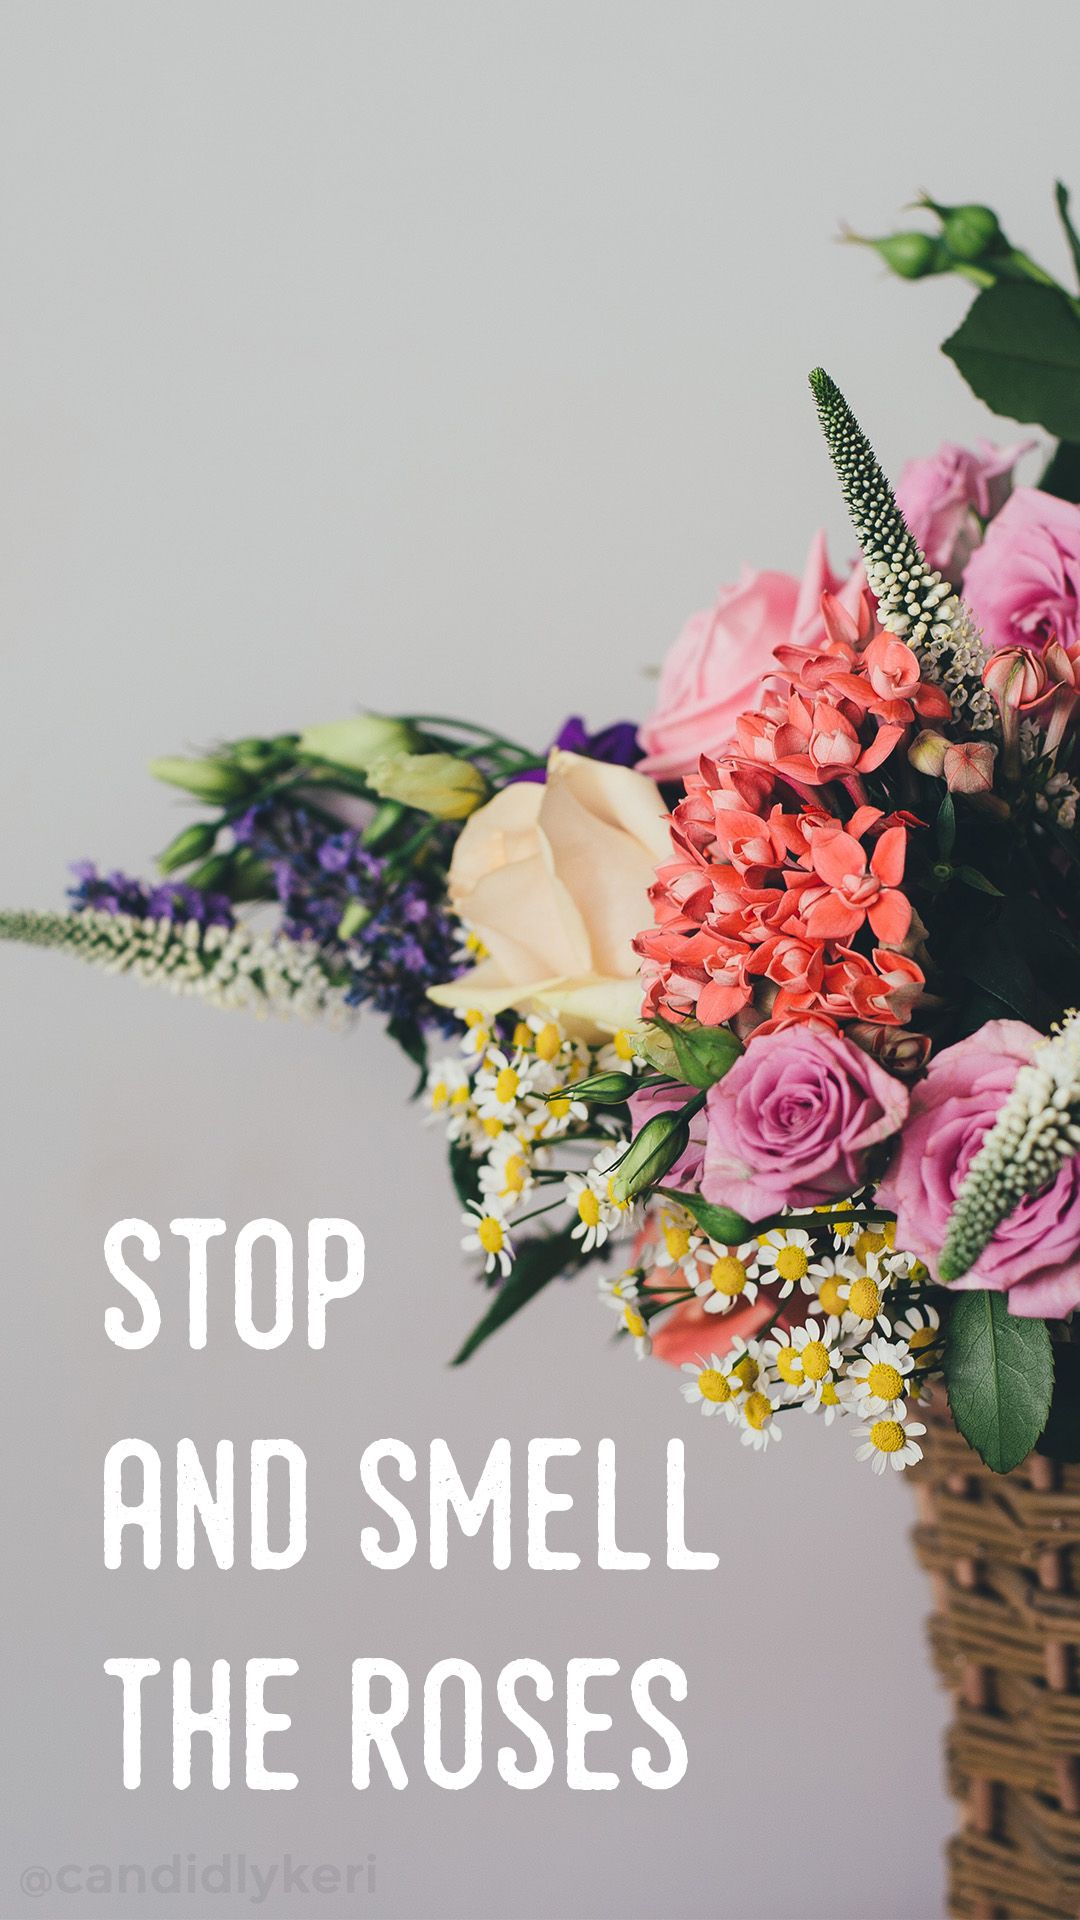 """""""Stop and smell the roses"""" cute floral flower quote"""